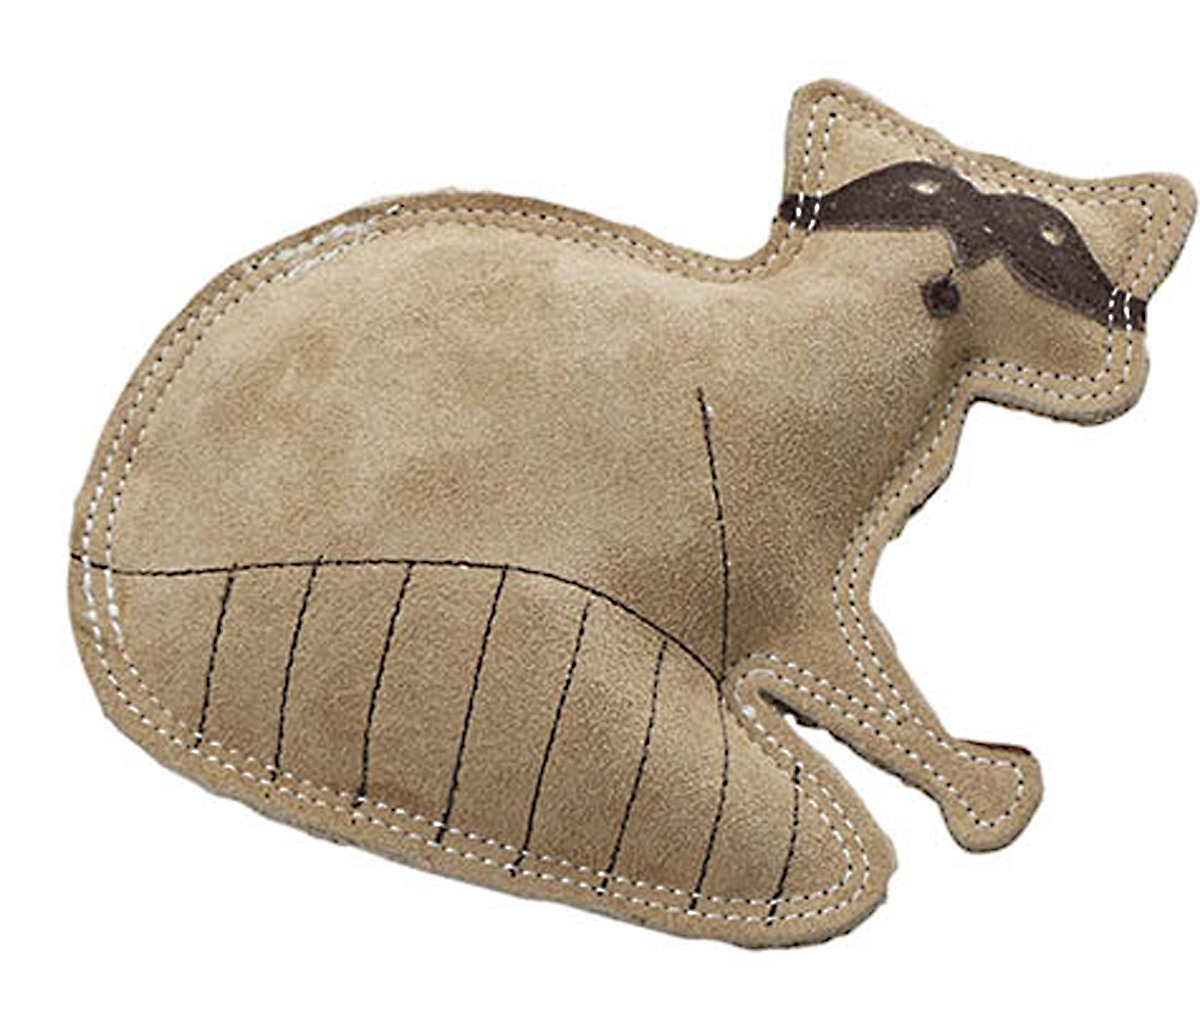 Pet Supplies Pet Squeak Toys Ethical Pet Dura Fused 7 25 Inch Leather Dog Toy Small Raccoon Amazon Com